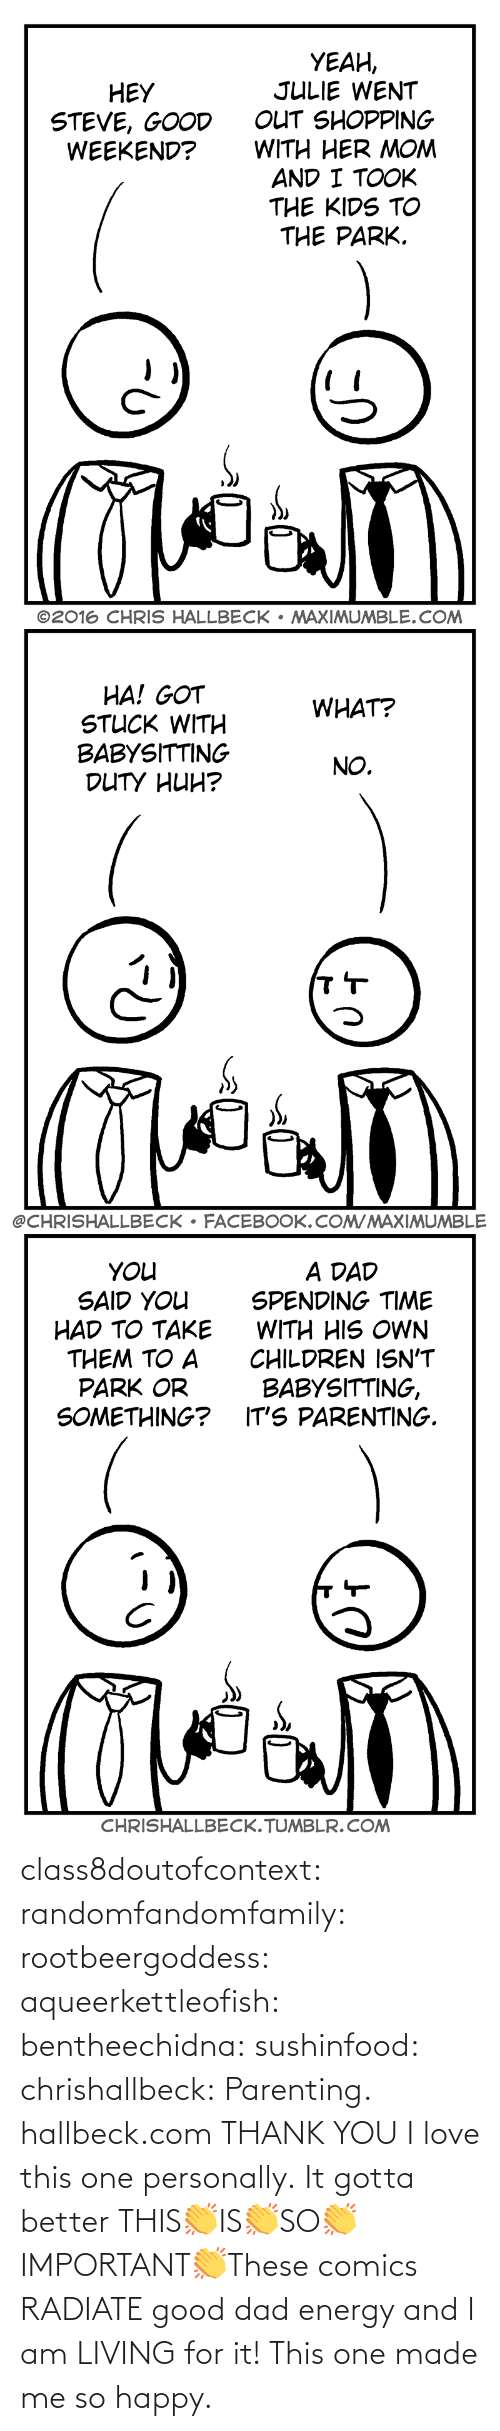 M: class8doutofcontext: randomfandomfamily:  rootbeergoddess:  aqueerkettleofish:  bentheechidna:  sushinfood:  chrishallbeck:  Parenting. hallbeck.com  THANK YOU  I love this one personally.    It gotta better   THIS👏IS👏SO👏IMPORTANT👏These comics RADIATE good dad energy and I am LIVING for it!    This one made me so happy.